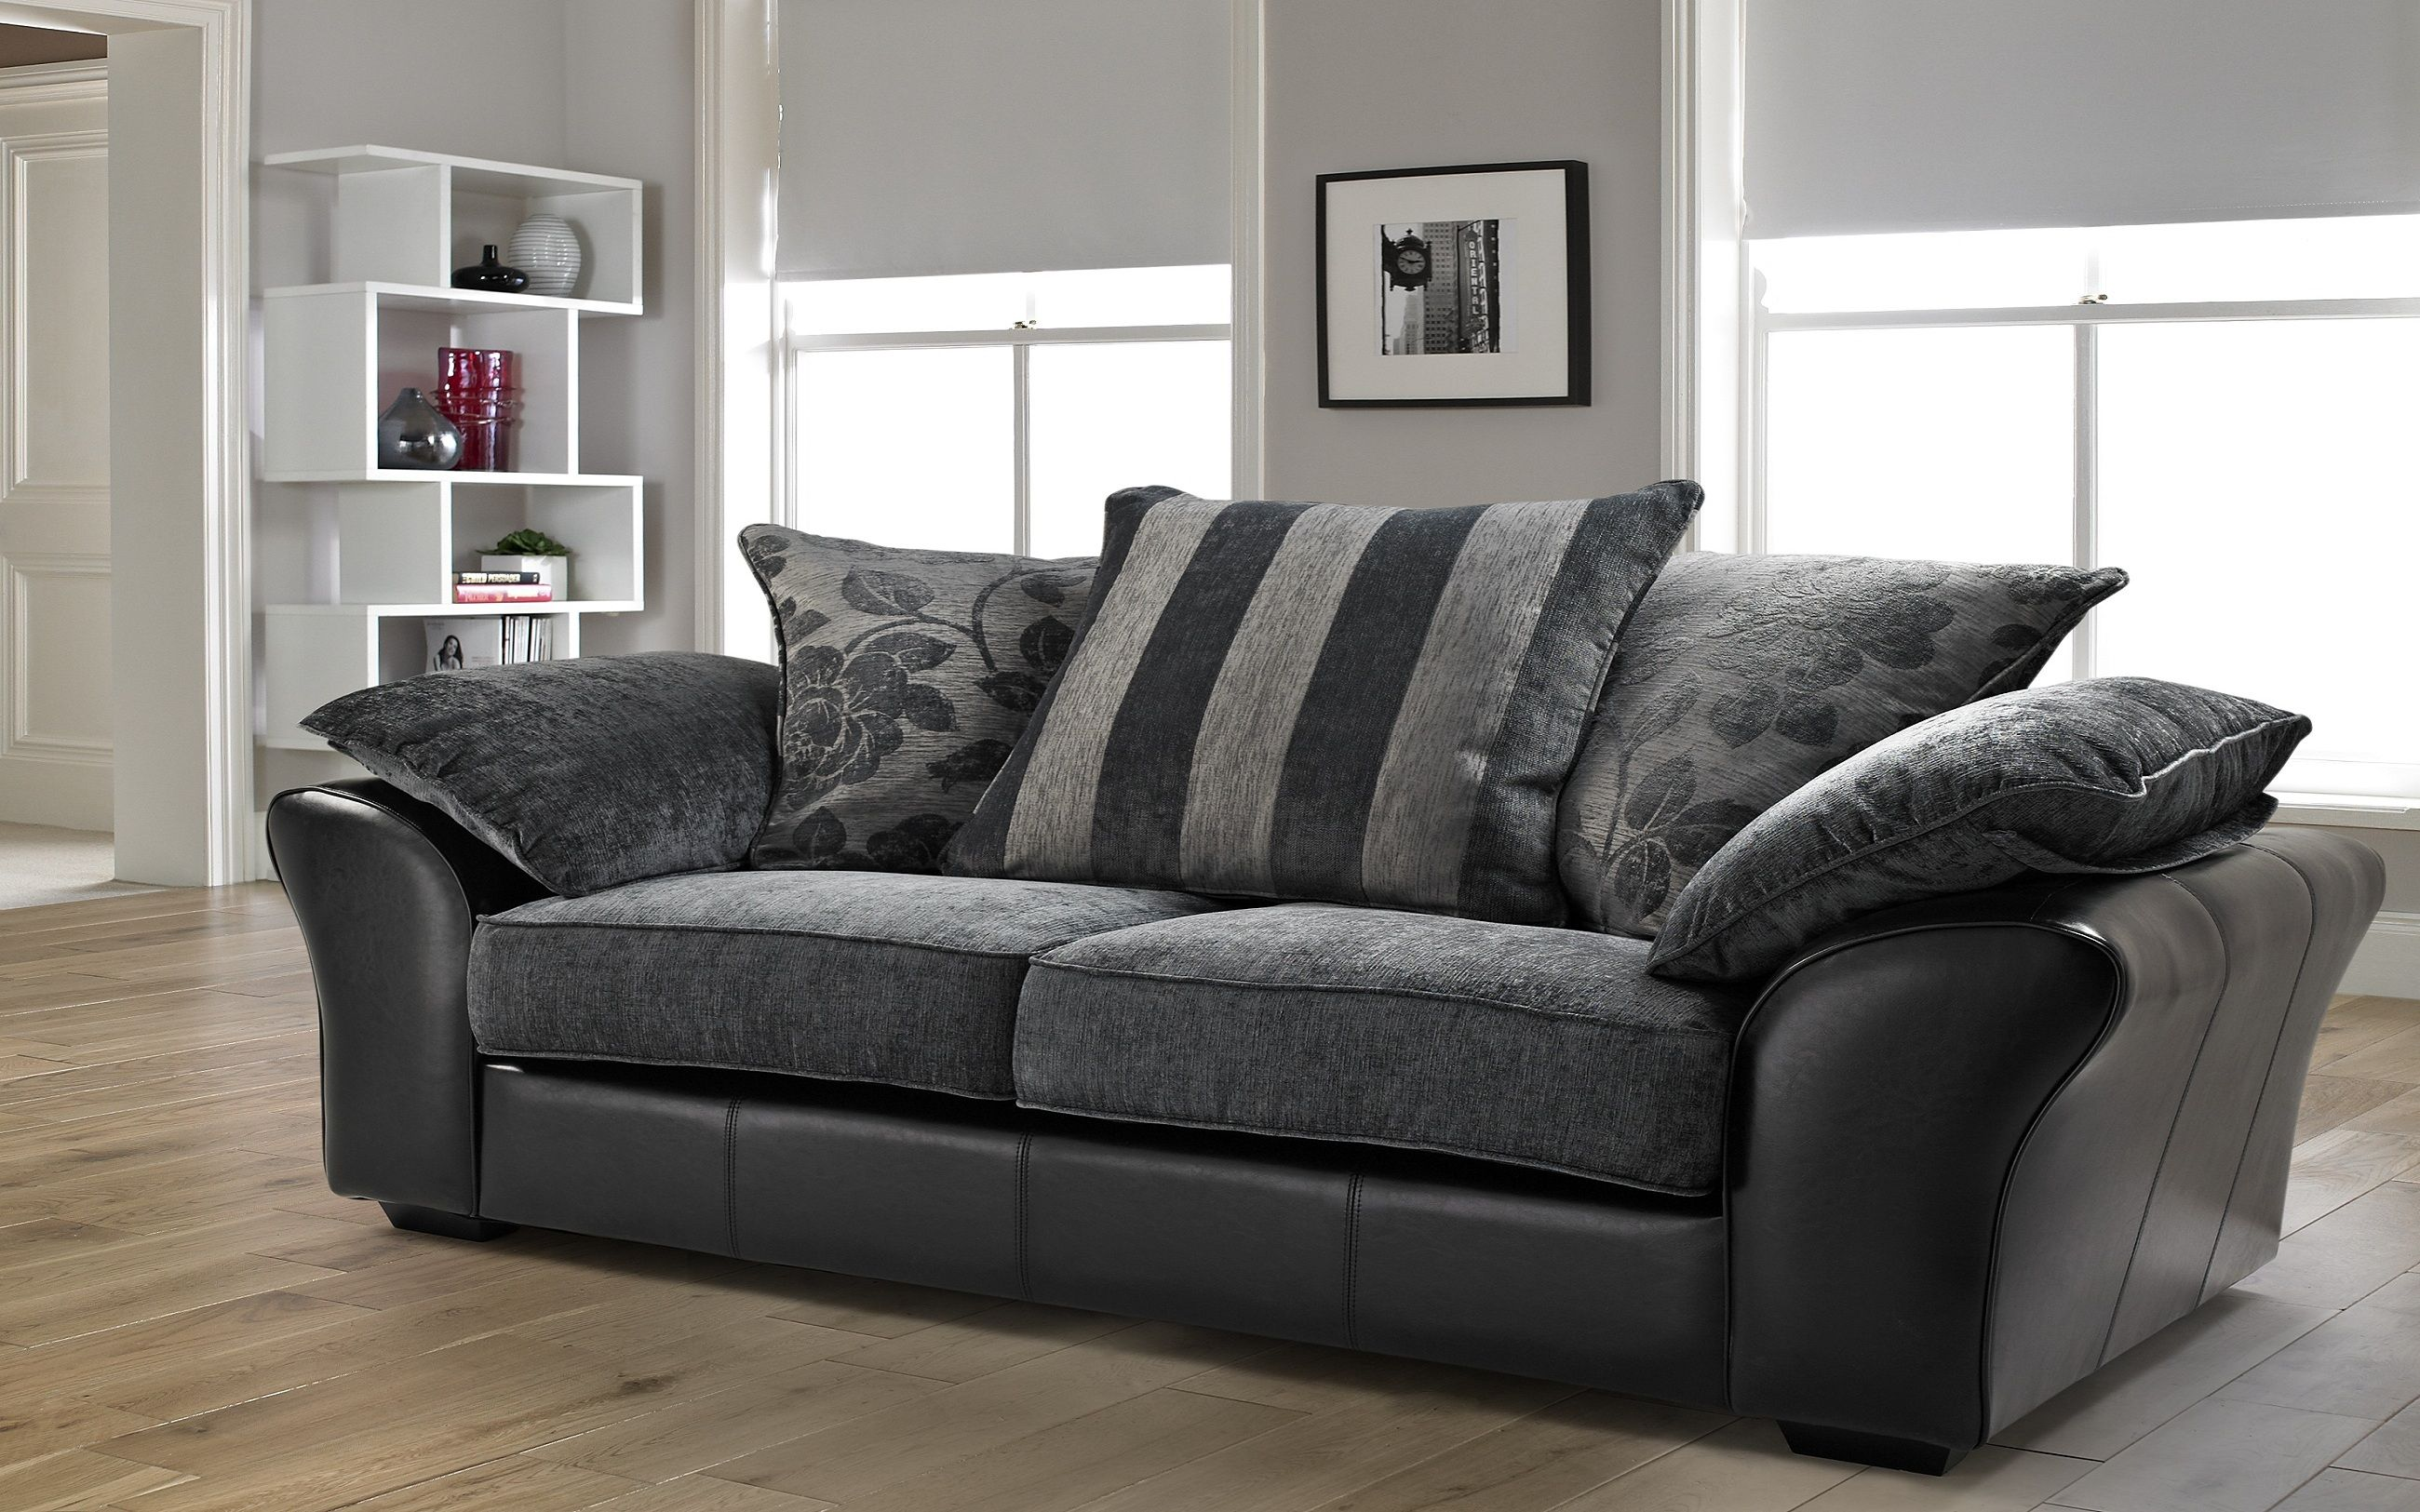 Perez 2 Seater Sofa